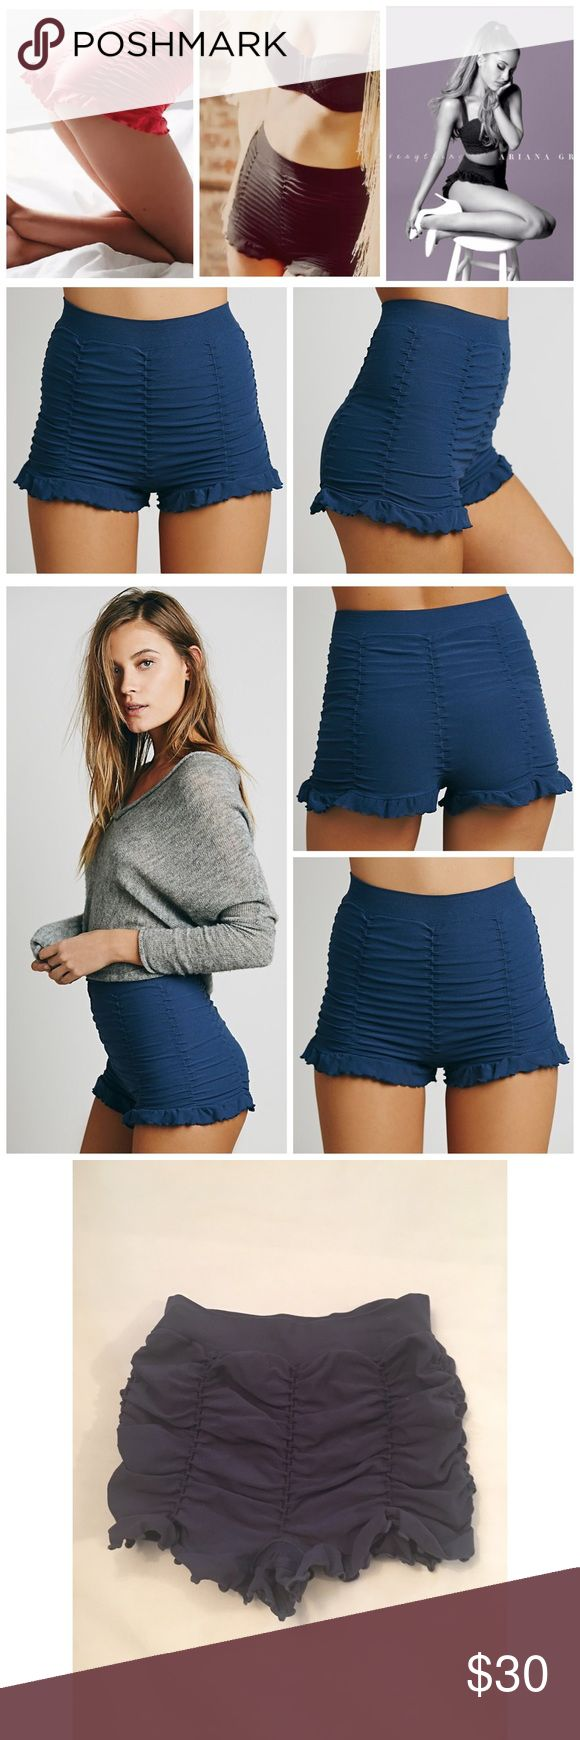 """INTIMATELY RUCHED SEAMLESS SHORTS NAVY FREE PEOPLE INTIMATELY RUCHED SEAMLESS SHORTS by FREE PEOPLE Color: NAVY BLUE only other colors shown for style reference. NAVY blue is sold out online! $38 retail. New without the tag inner label marked perfect condition   Stretchy seamless boy shorts with vertical ruched detailing all around with ruffles around bottom opening.  Intimately  92% Nylon 8% Spandex Hand Wash Cold Made in the USA size XS/S Waist all around - relaxed: 20.0"""" = 50.8 cm Rise…"""